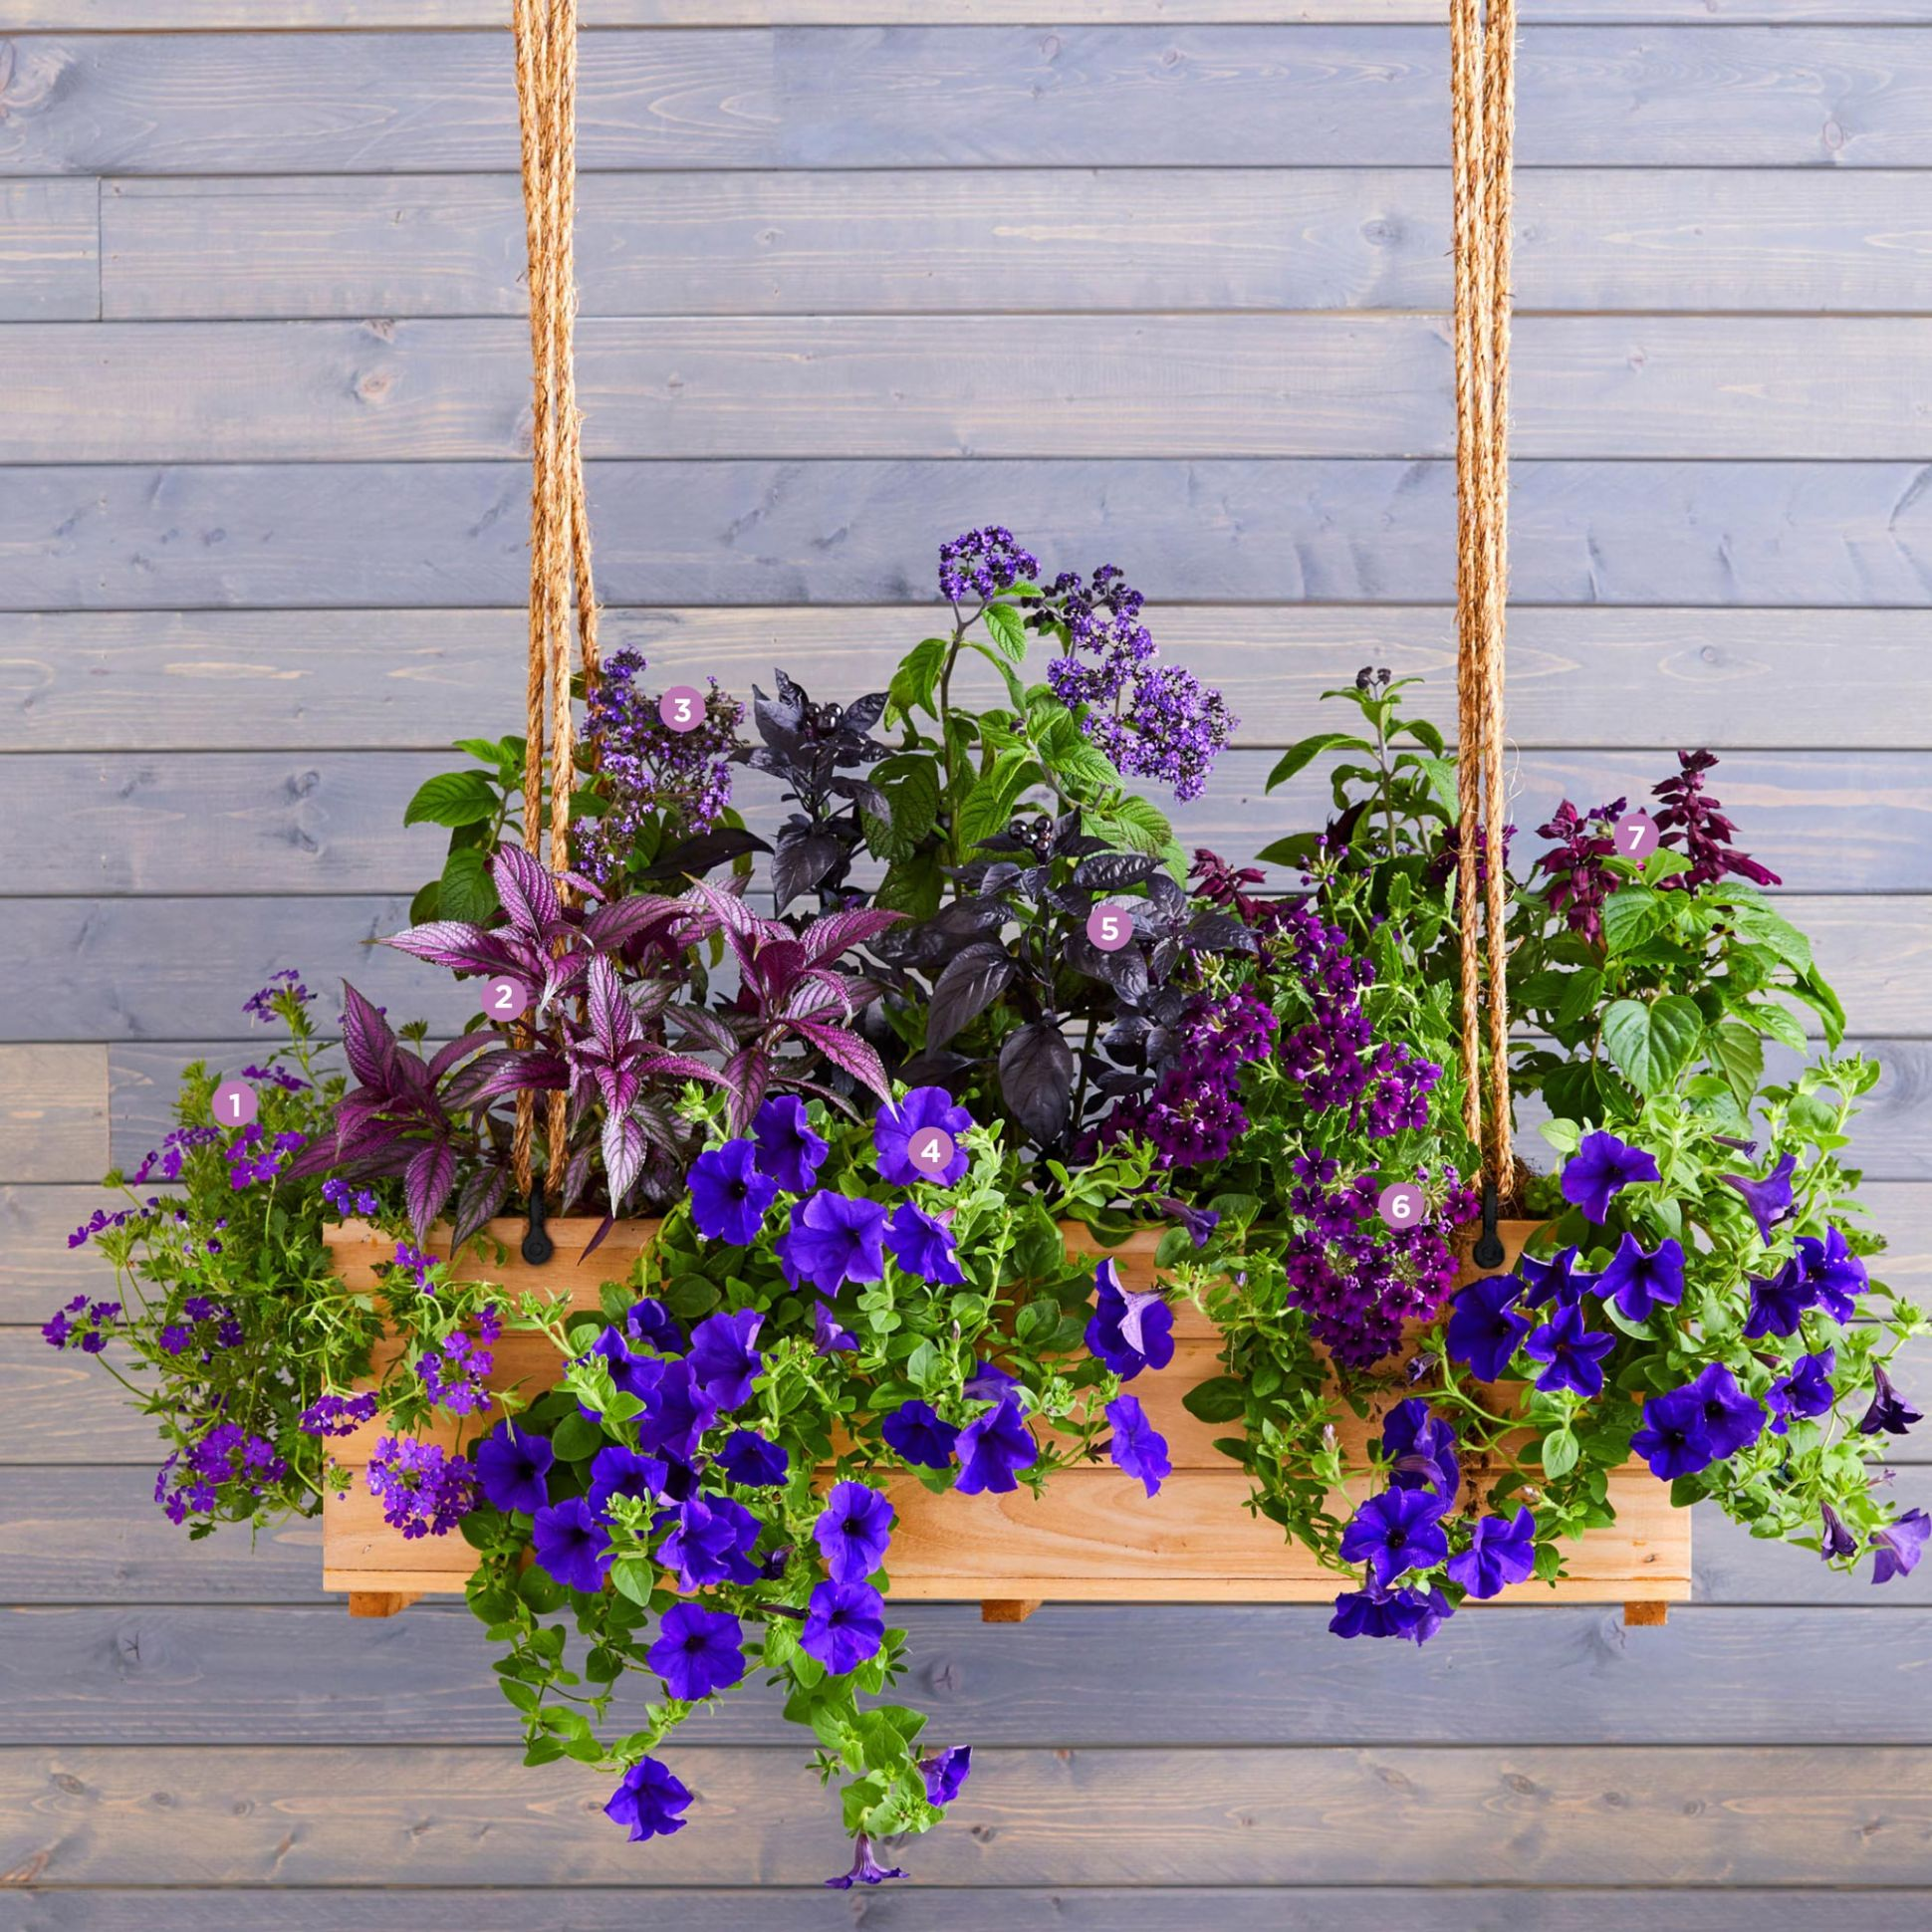 10 Bright and Beautiful Window Box Planters | Midwest Living - window box ideas no plants